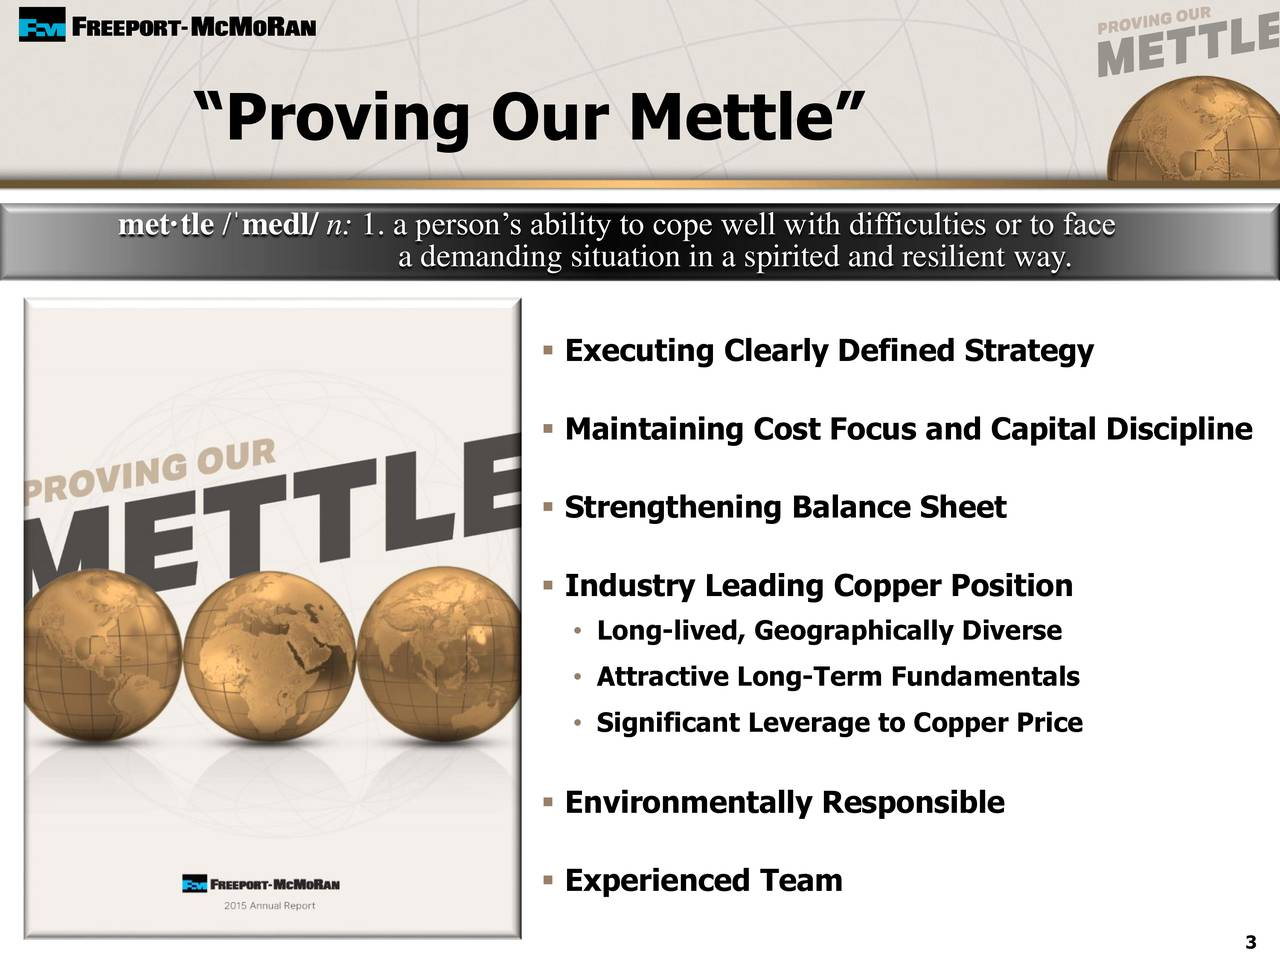 mettle /medl/ n: 1. a persons ability to cope well with difficulties or to face a demanding situation in a spirited and resilient way. Executing Clearly Defined Strategy Maintaining Cost Focus and Capital Discipline Strengthening Balance Sheet Industry Leading Copper Position Long-lived, Geographically Diverse Attractive Long-Term Fundamentals Significant Leverage to Copper Price Environmentally Responsible Experienced Team